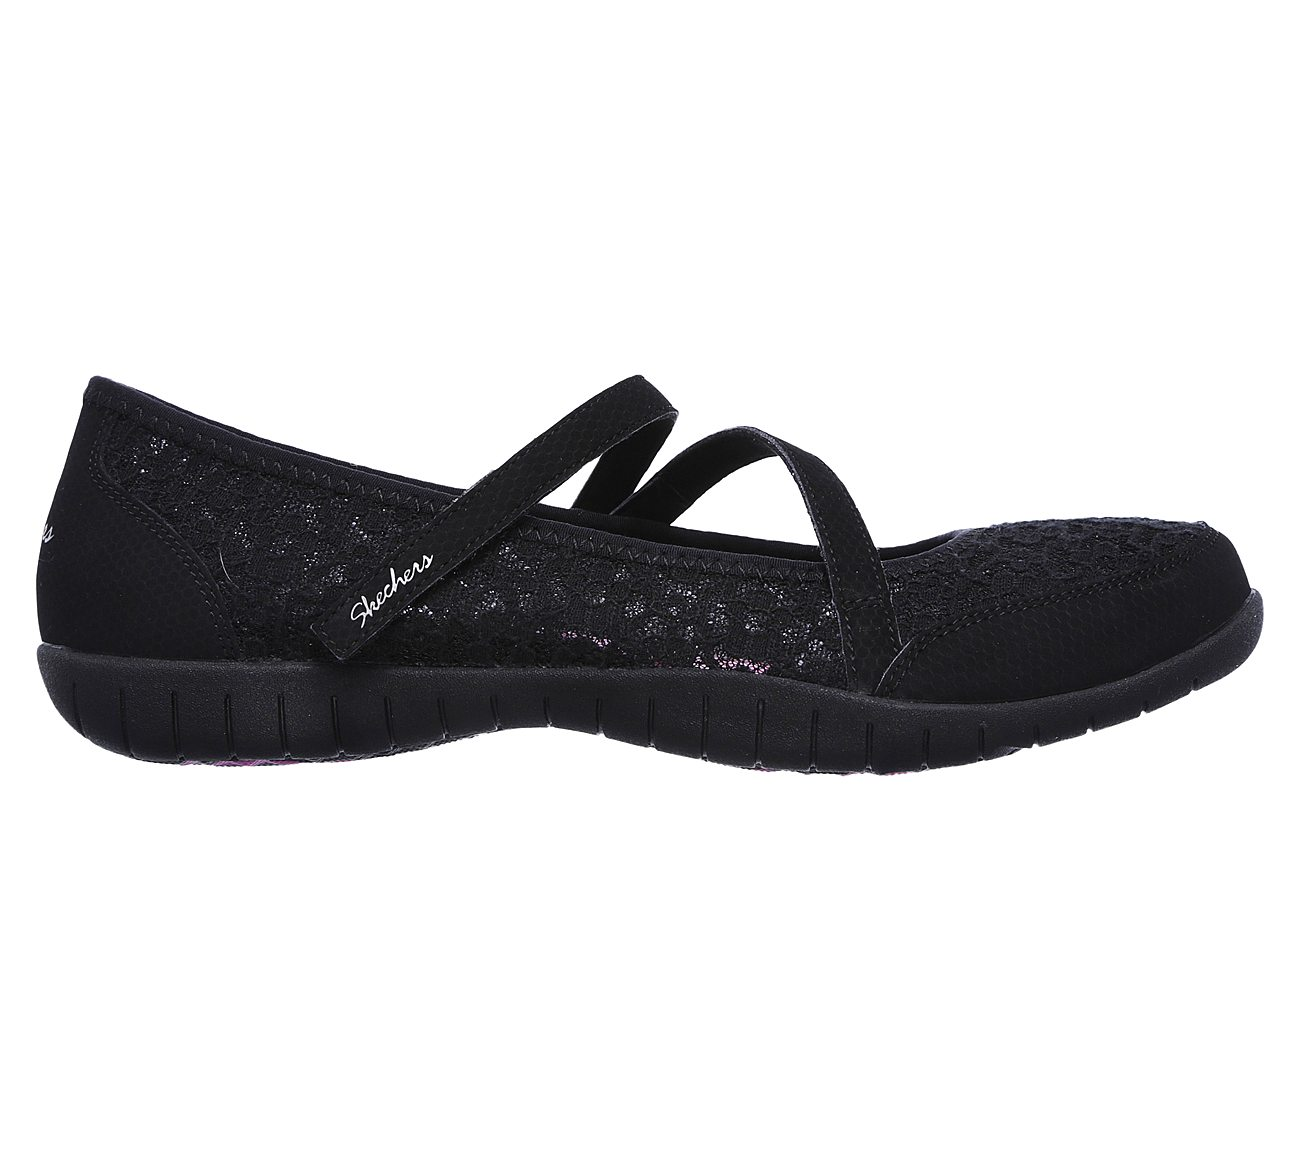 dc4ffecf6c9a Buy SKECHERS Atomic - Dainty Lady Comfort Shoes Shoes only  60.00